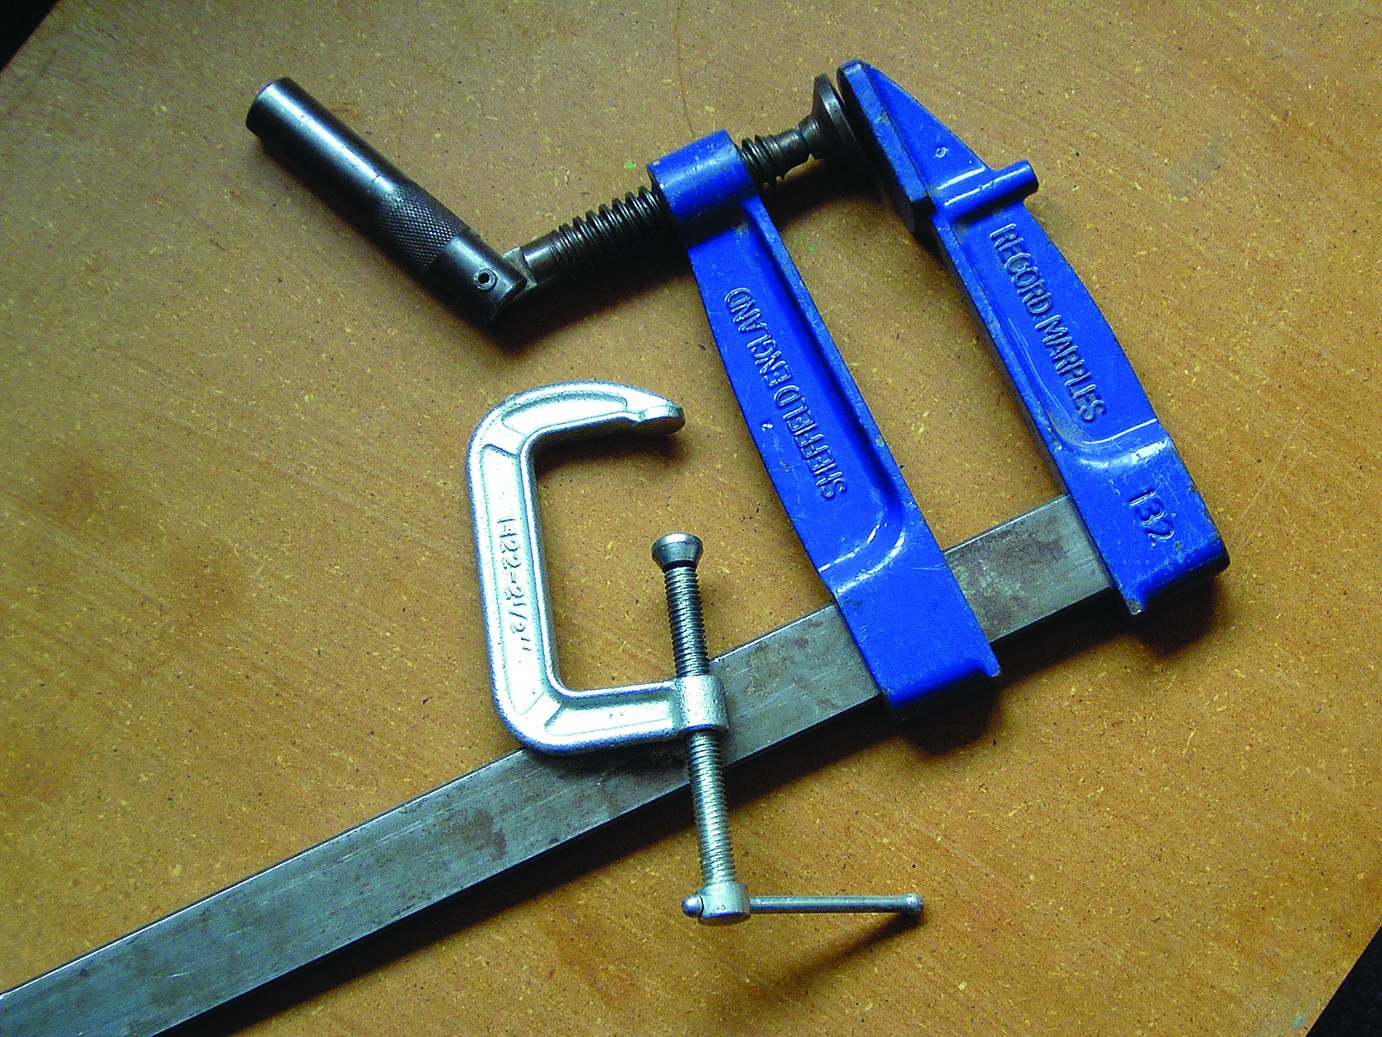 A variety of useful clamps. I prefer the larger quick action type.